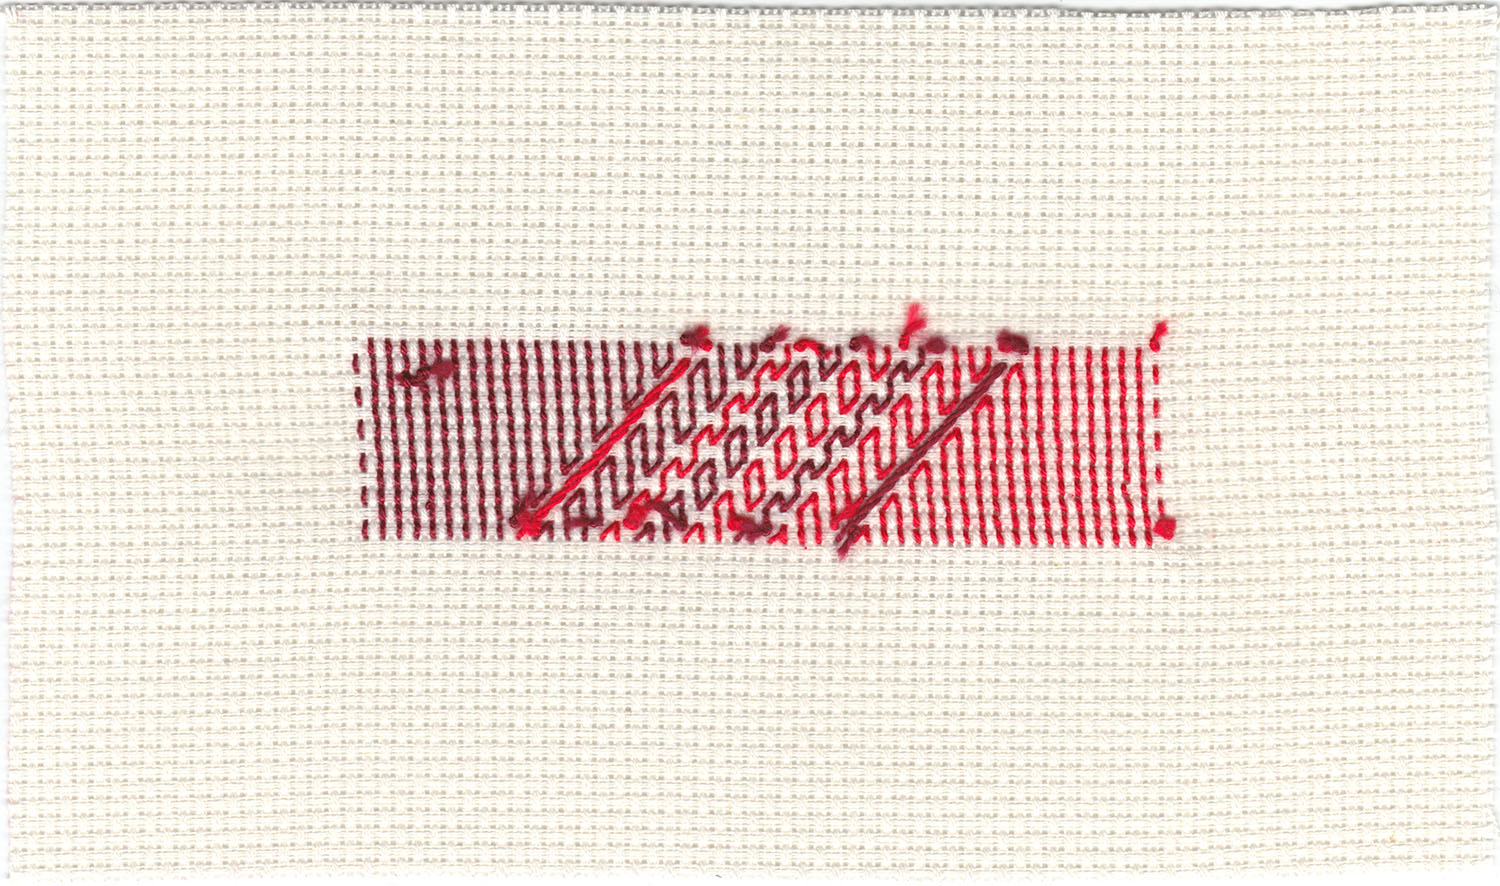 Colour Study in 576 Diagonal Stitches_8B_web.jpg